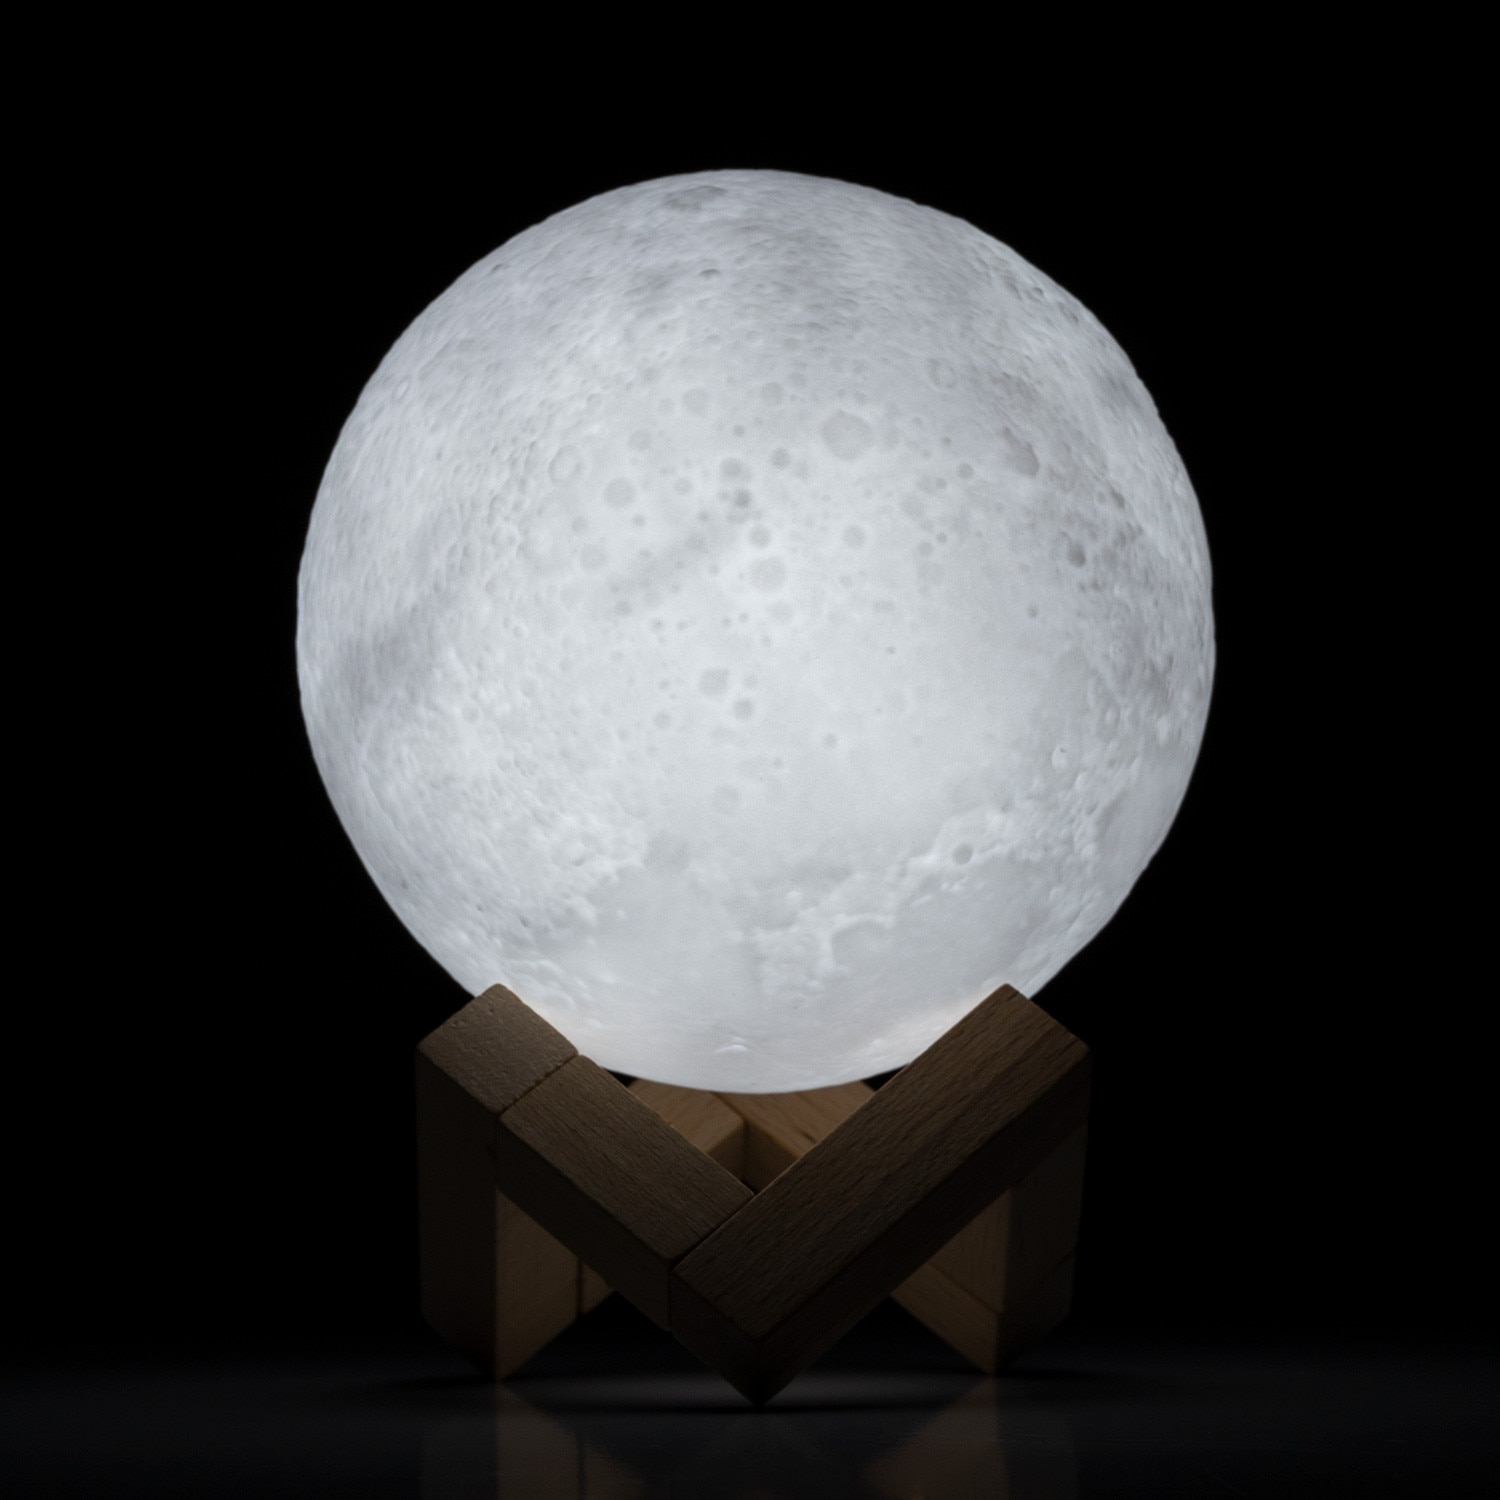 Lampara-Luna-LED-3D-Decoracion-LED-Tipos-Lamparas miniatura 12